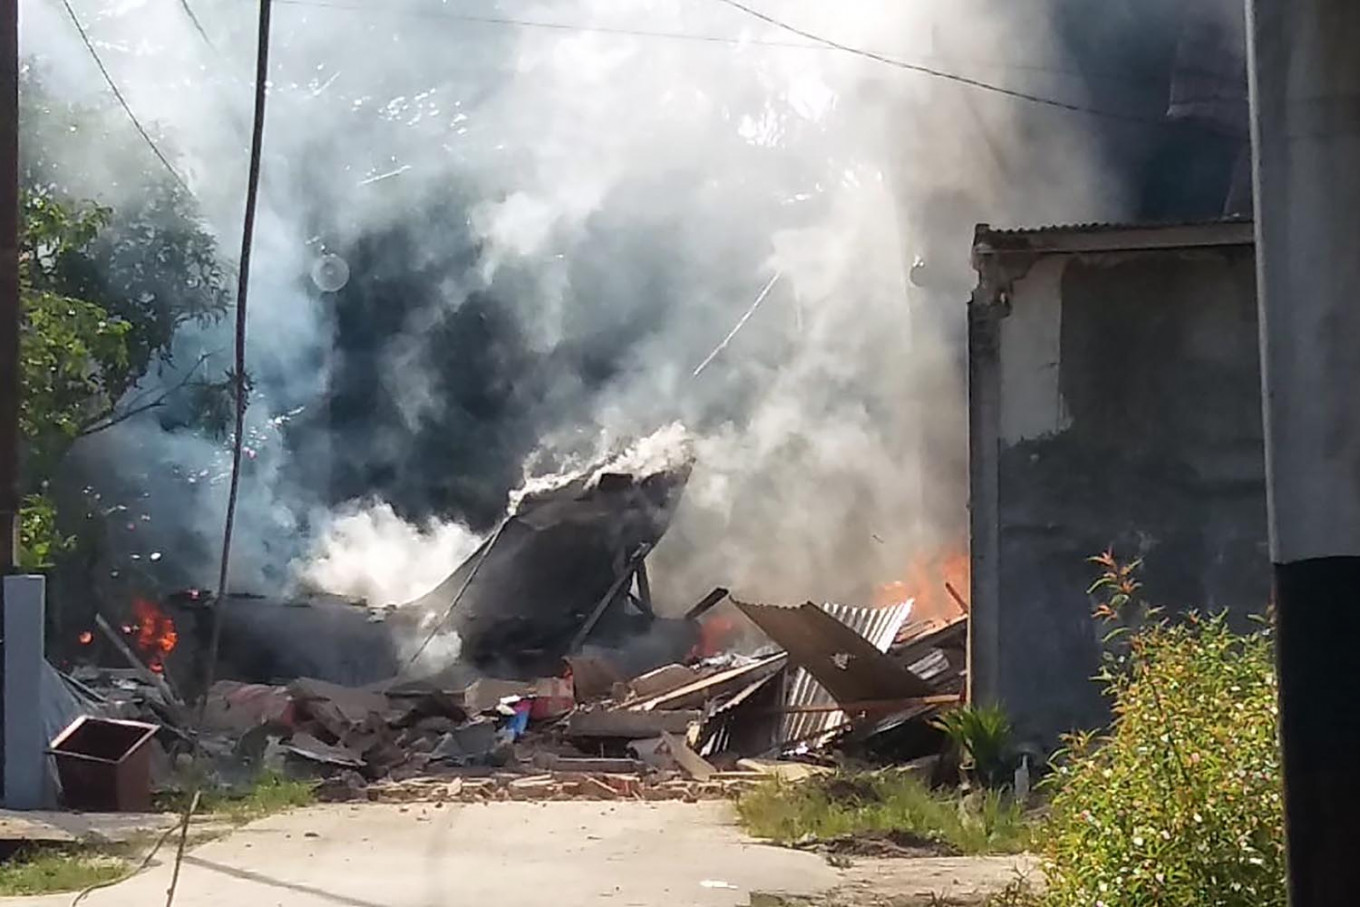 Three houses in Riau damaged by crashing Indonesian Air Force Hawk 209 jet fighter